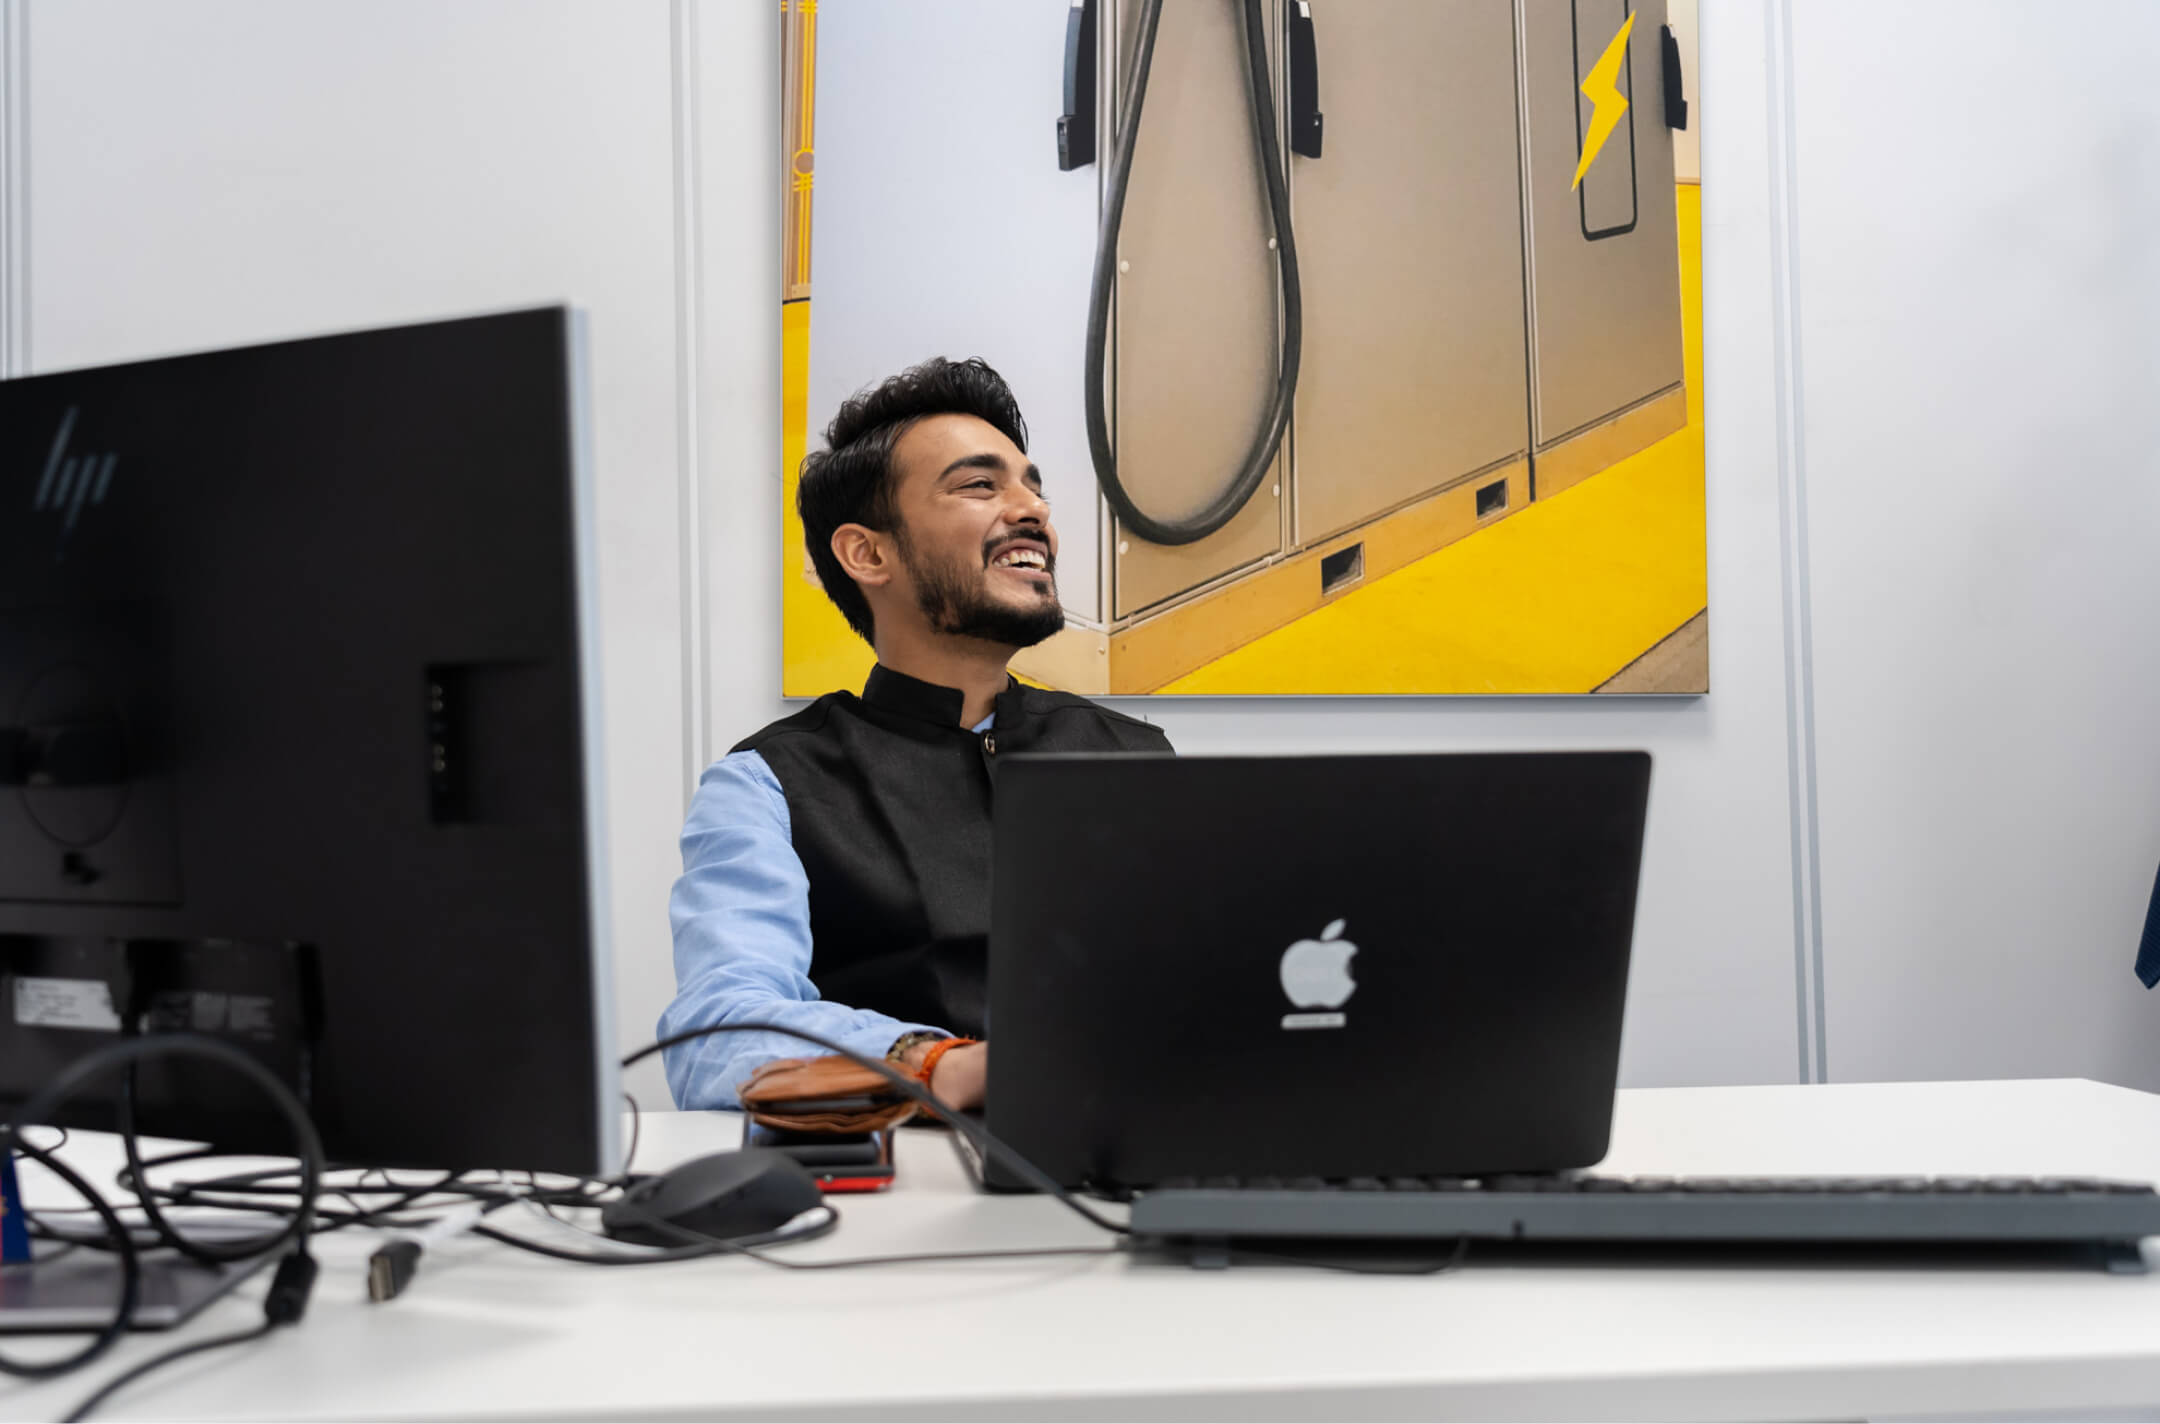 Man laughing at Heliox office